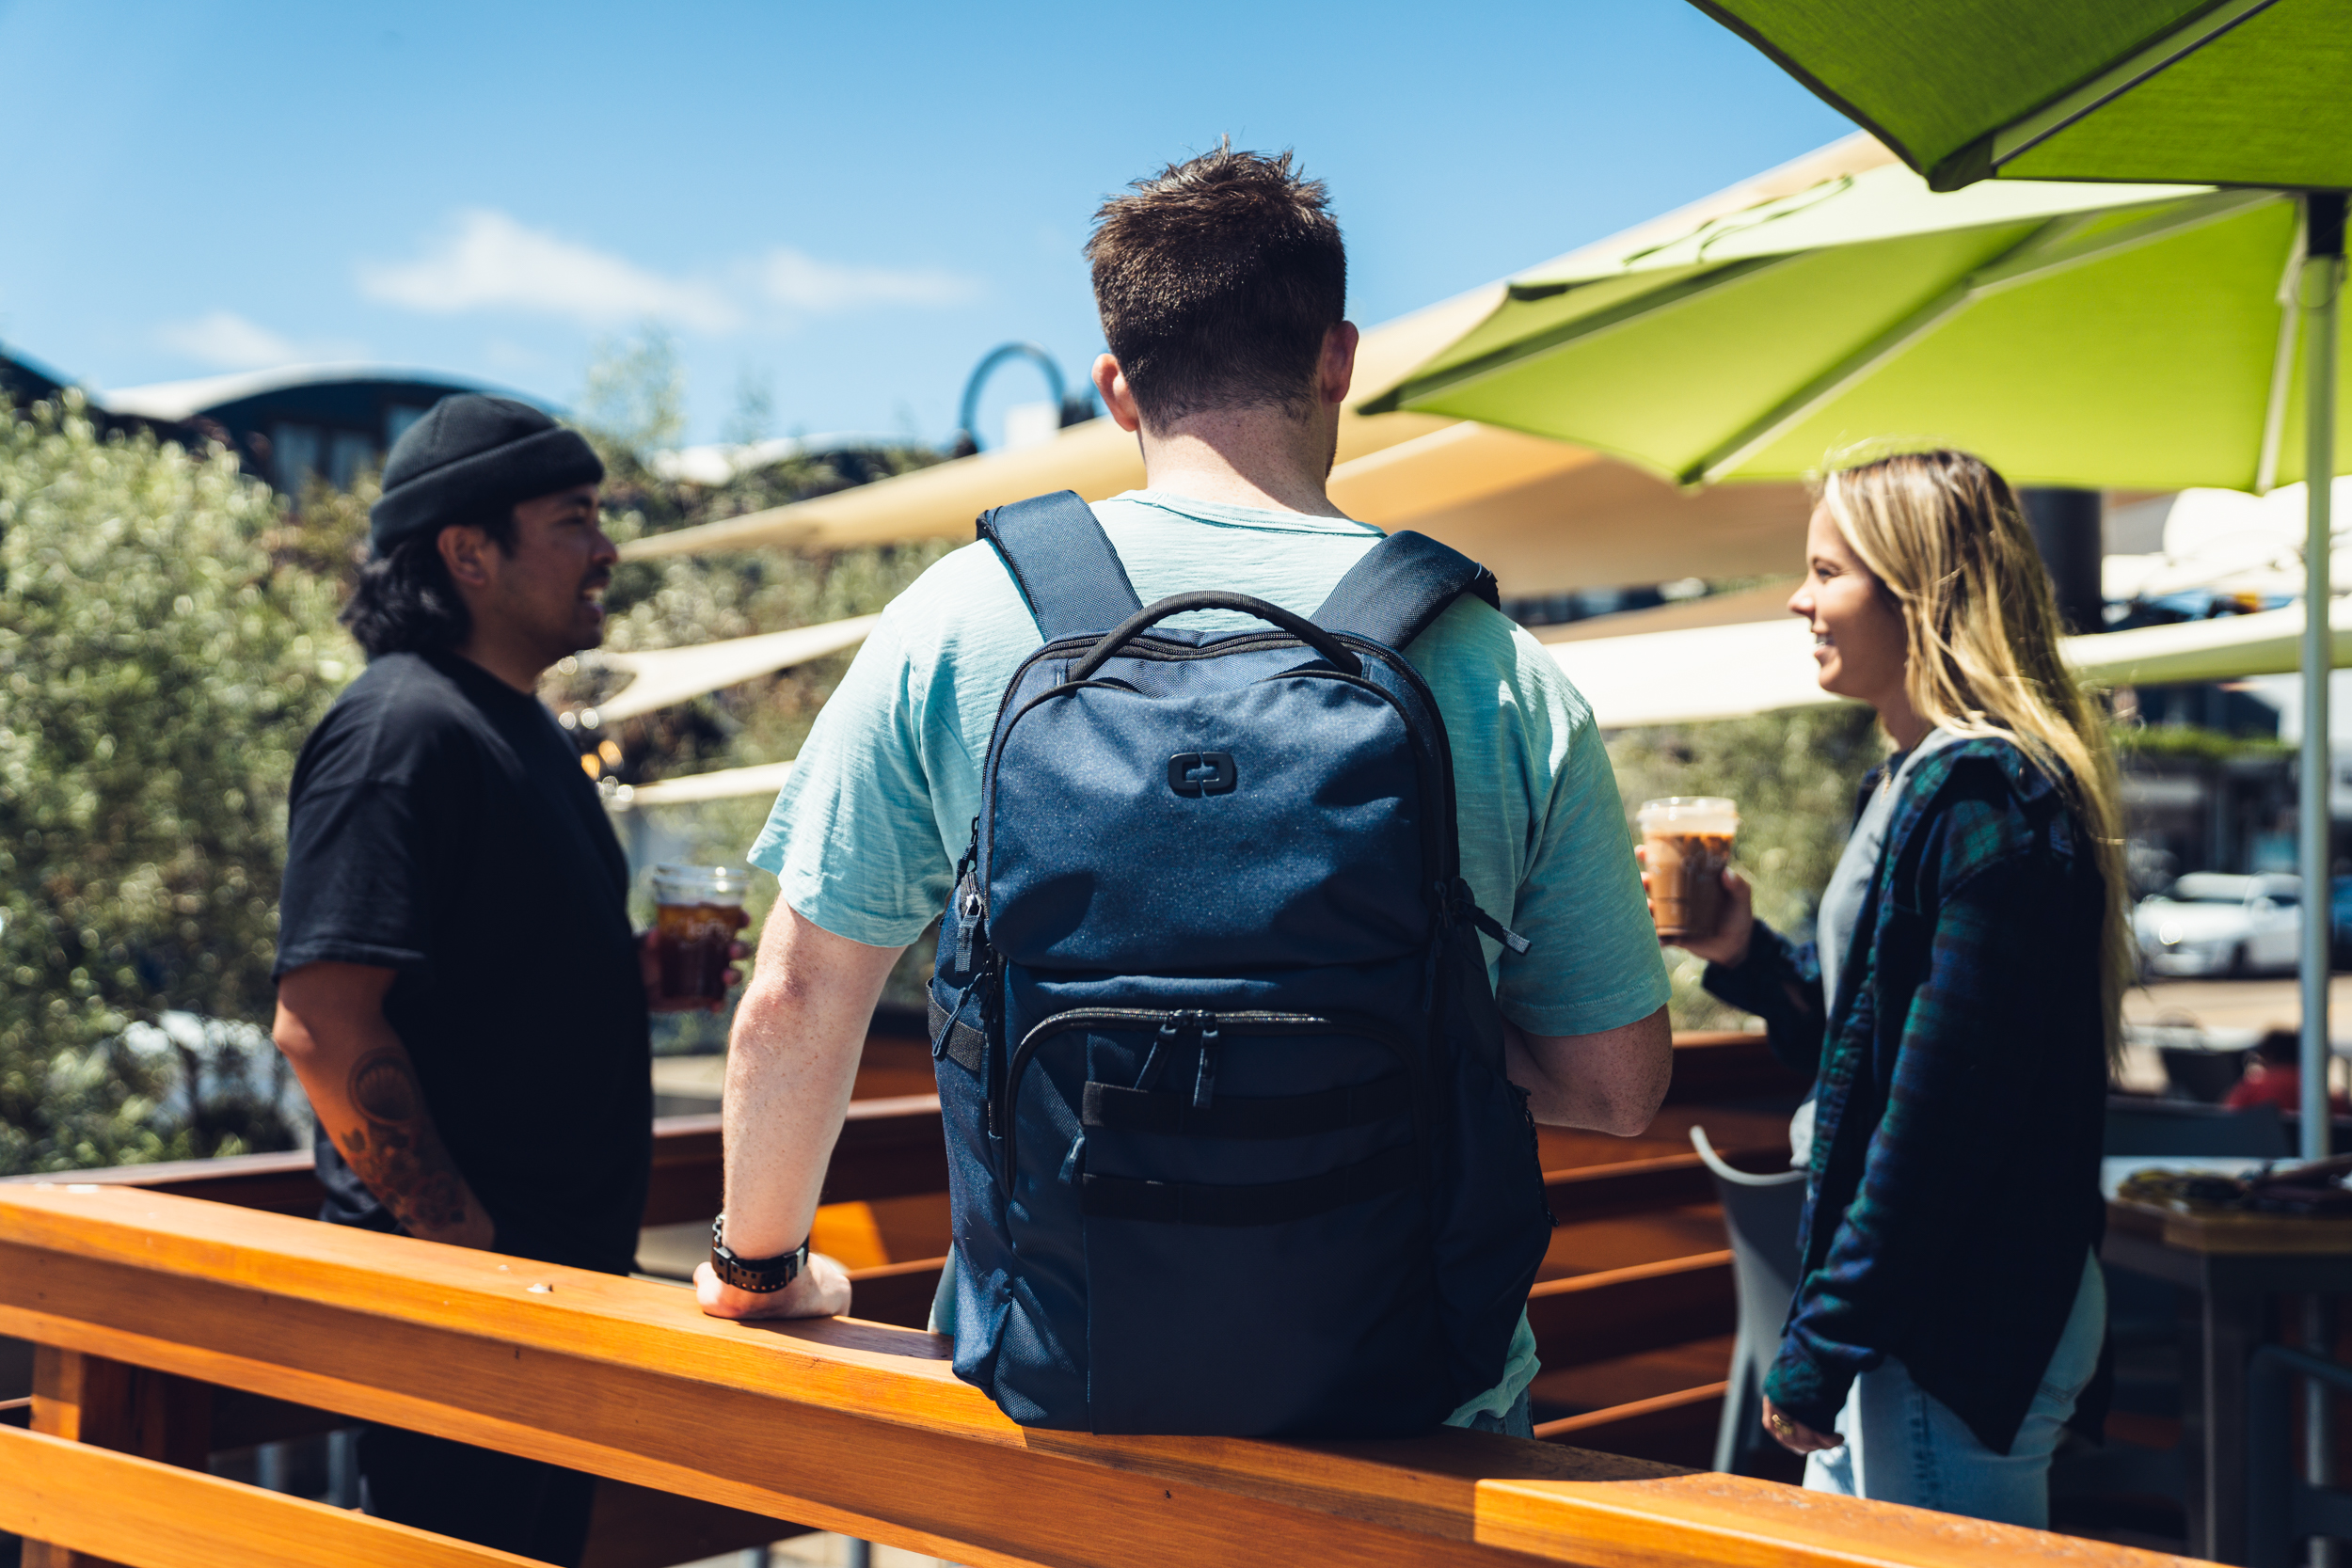 pace-pro-25-backpack-lifestyle-2